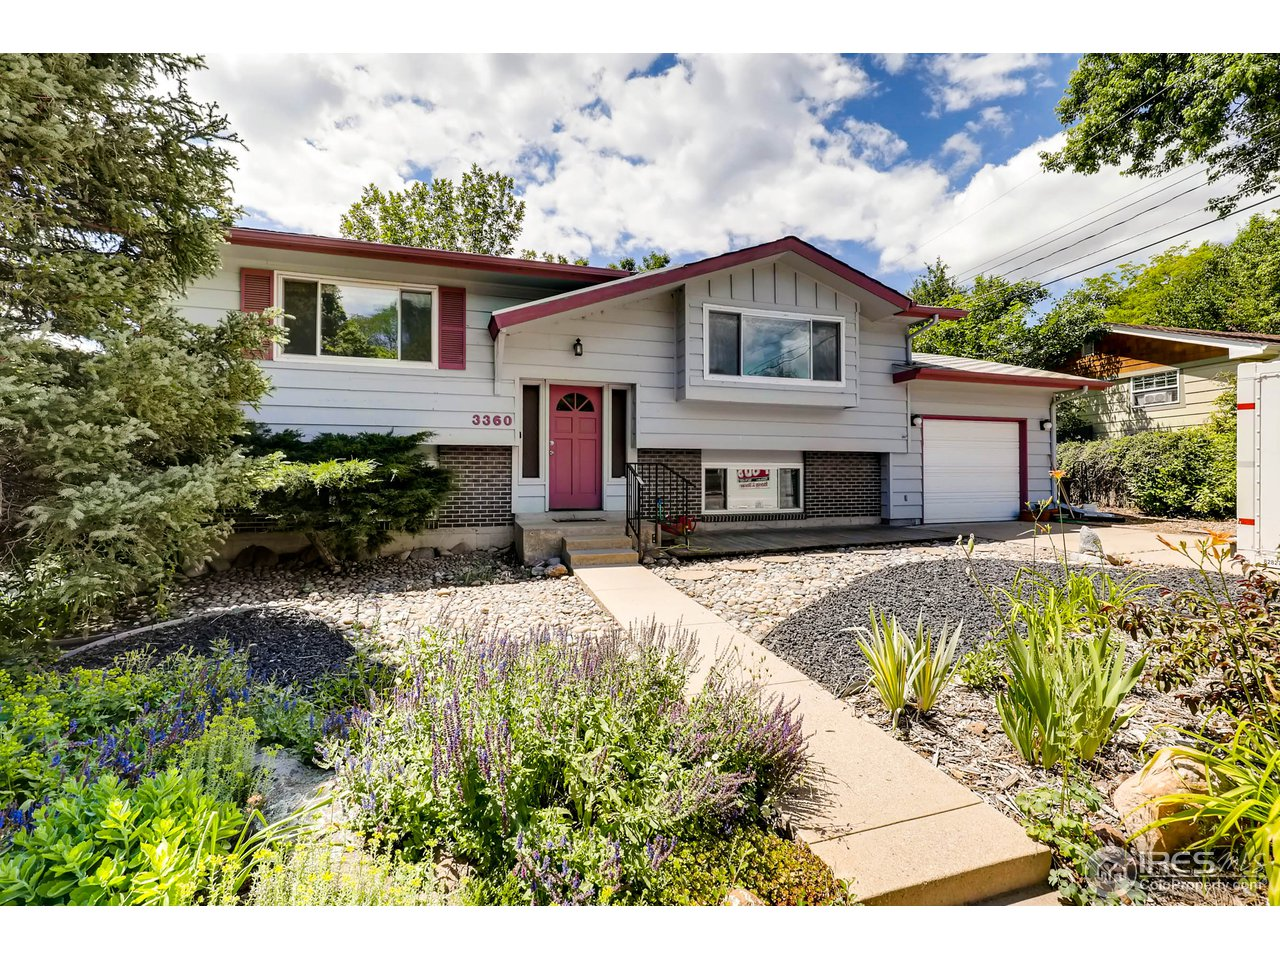 3360 Everett Dr, Boulder CO 80305